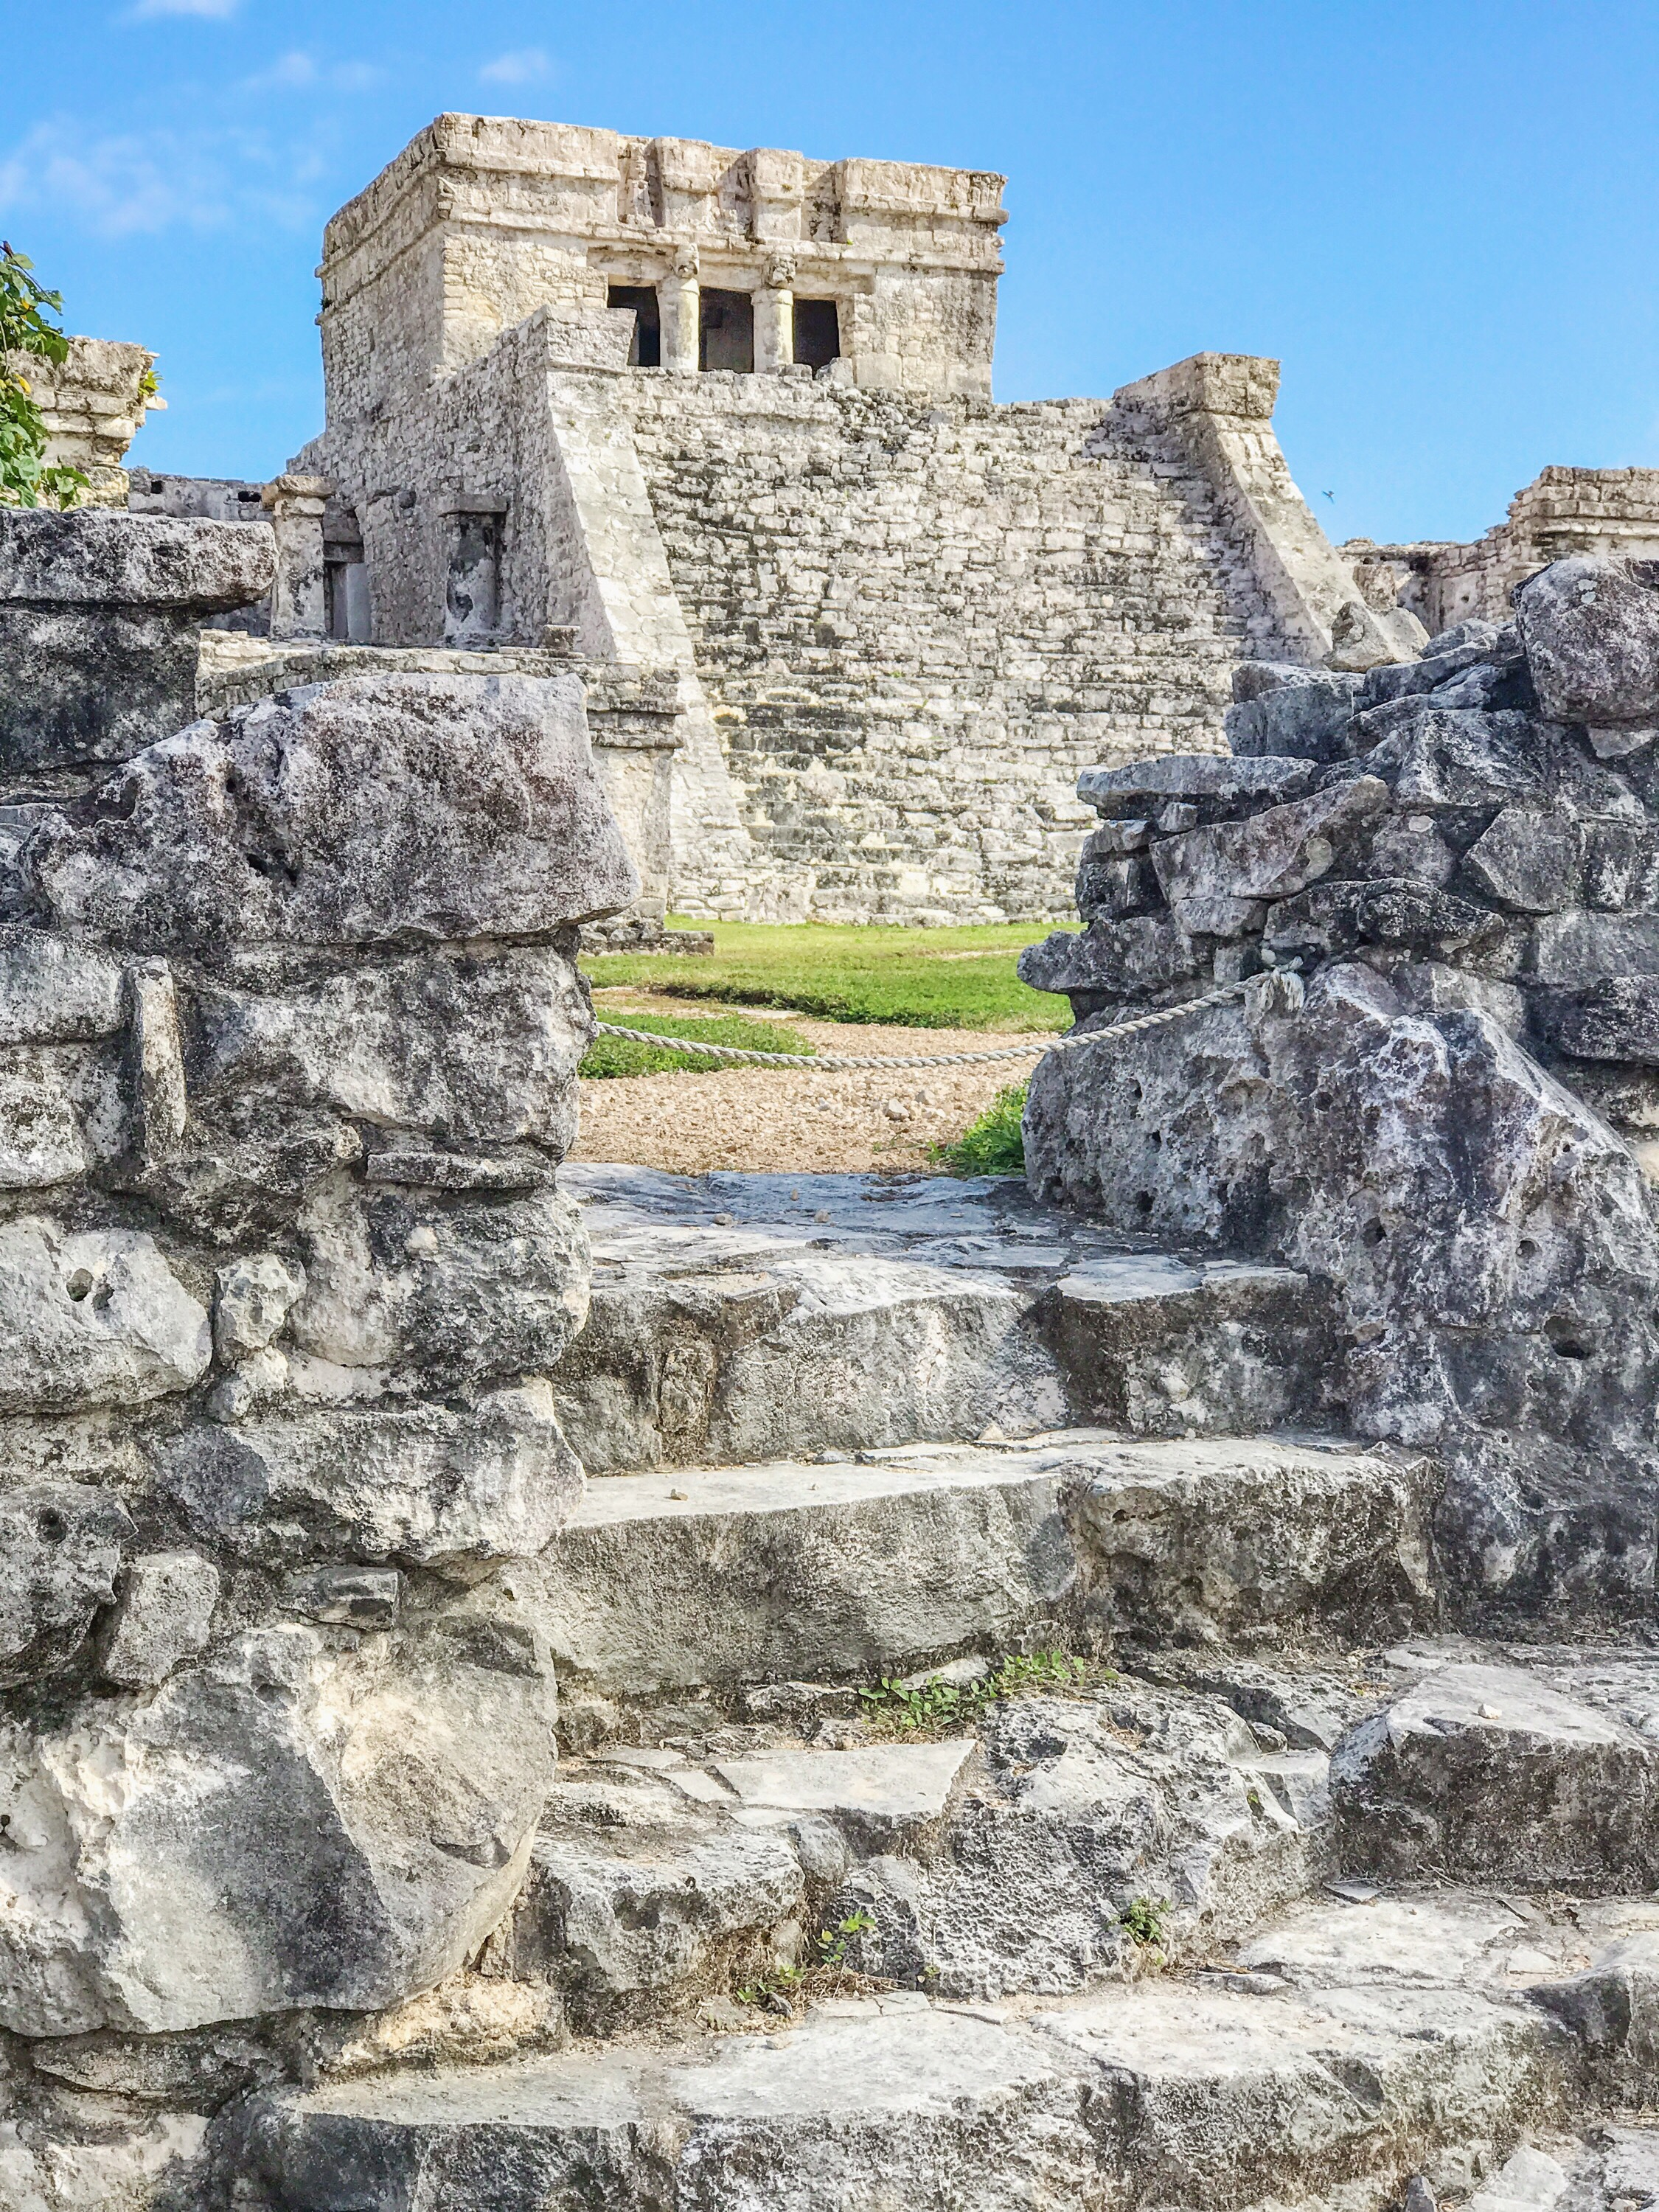 Mayan ruins: Temple of the Wind God near Tulum Mexico